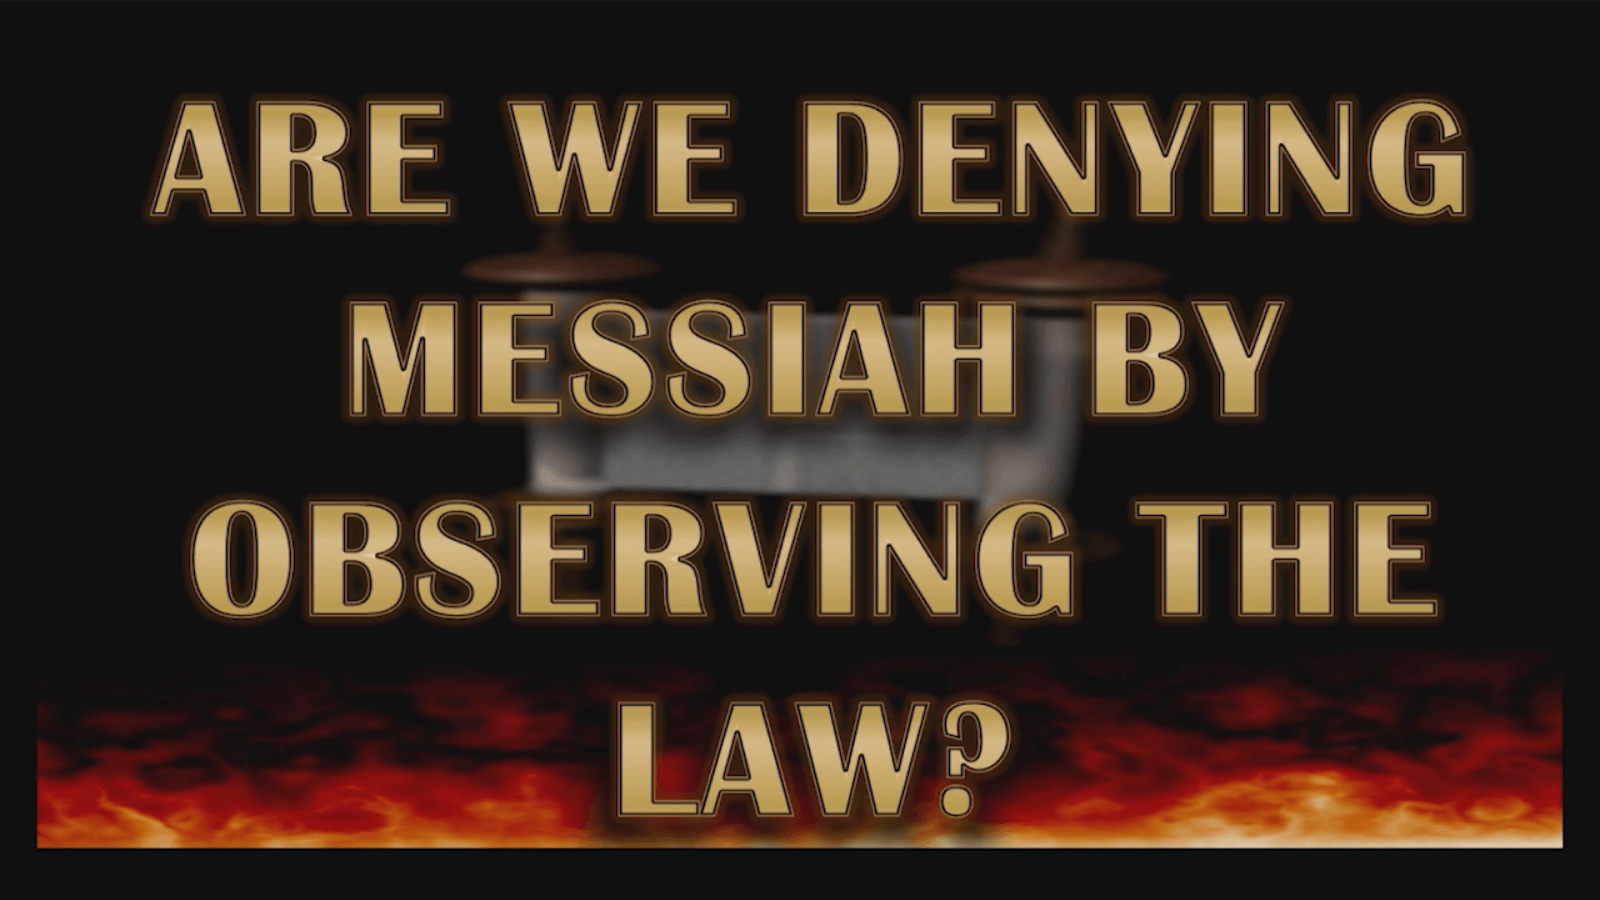 Are we Denying Messiah by Observing the Law?